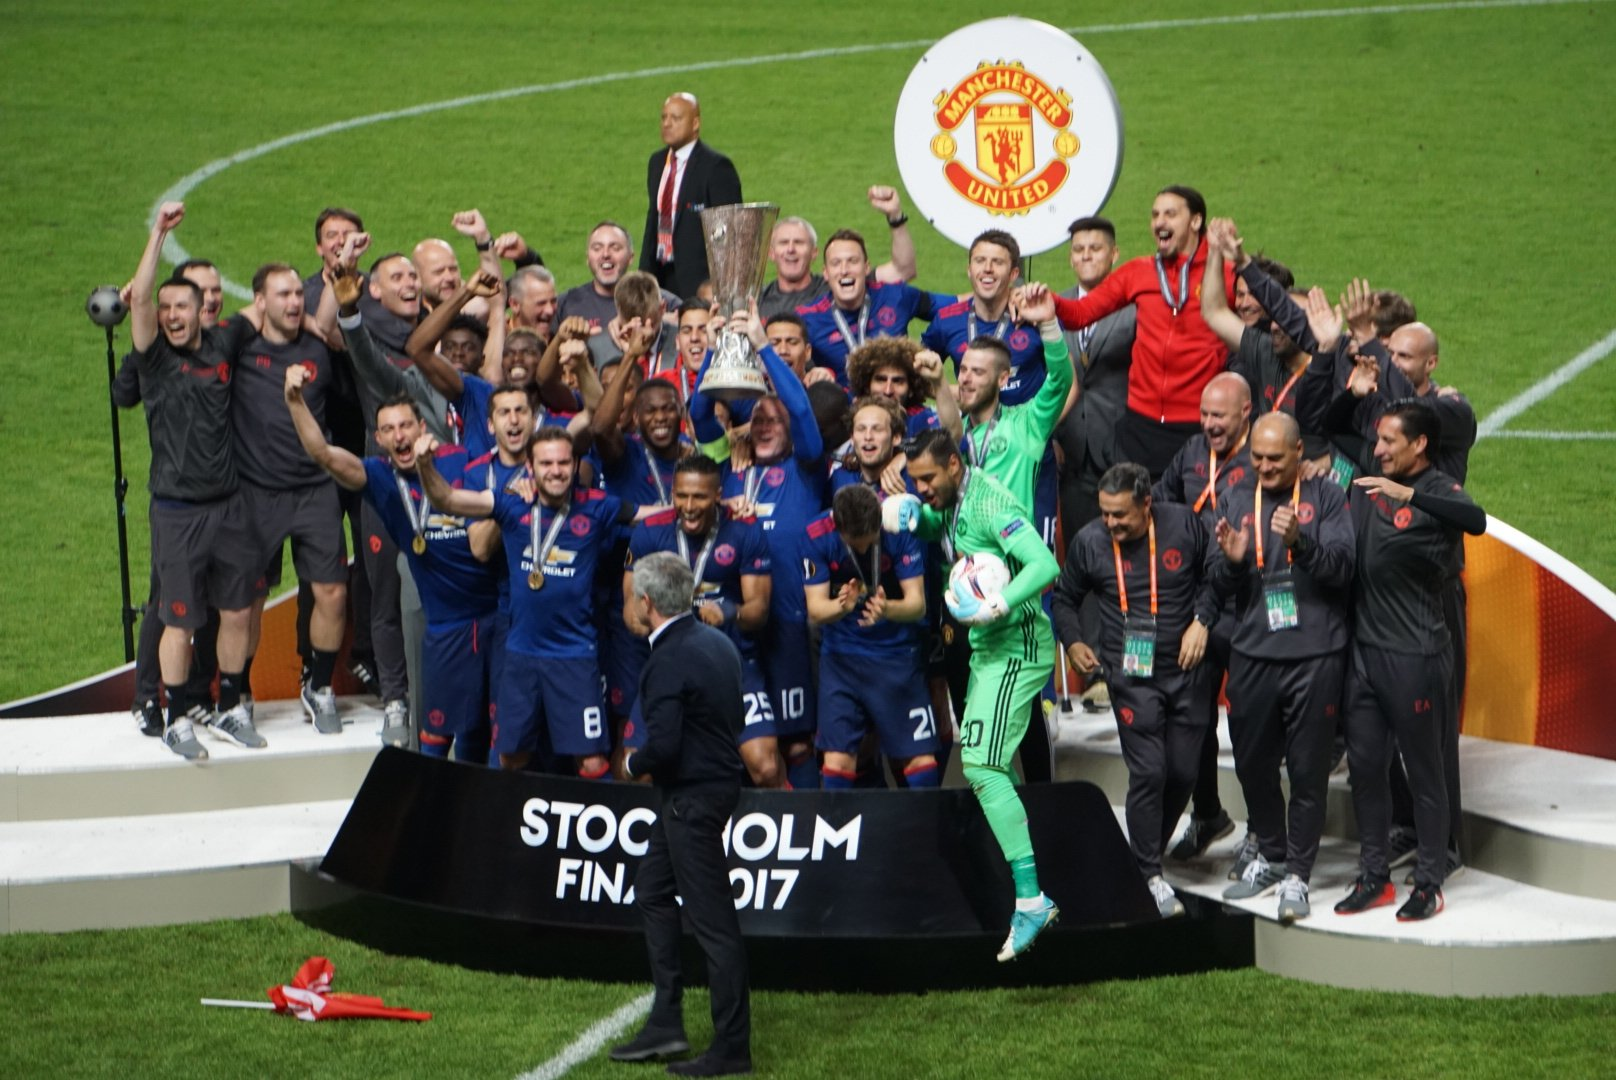 Manchester United celebrates with the trophy; photo: UEFA